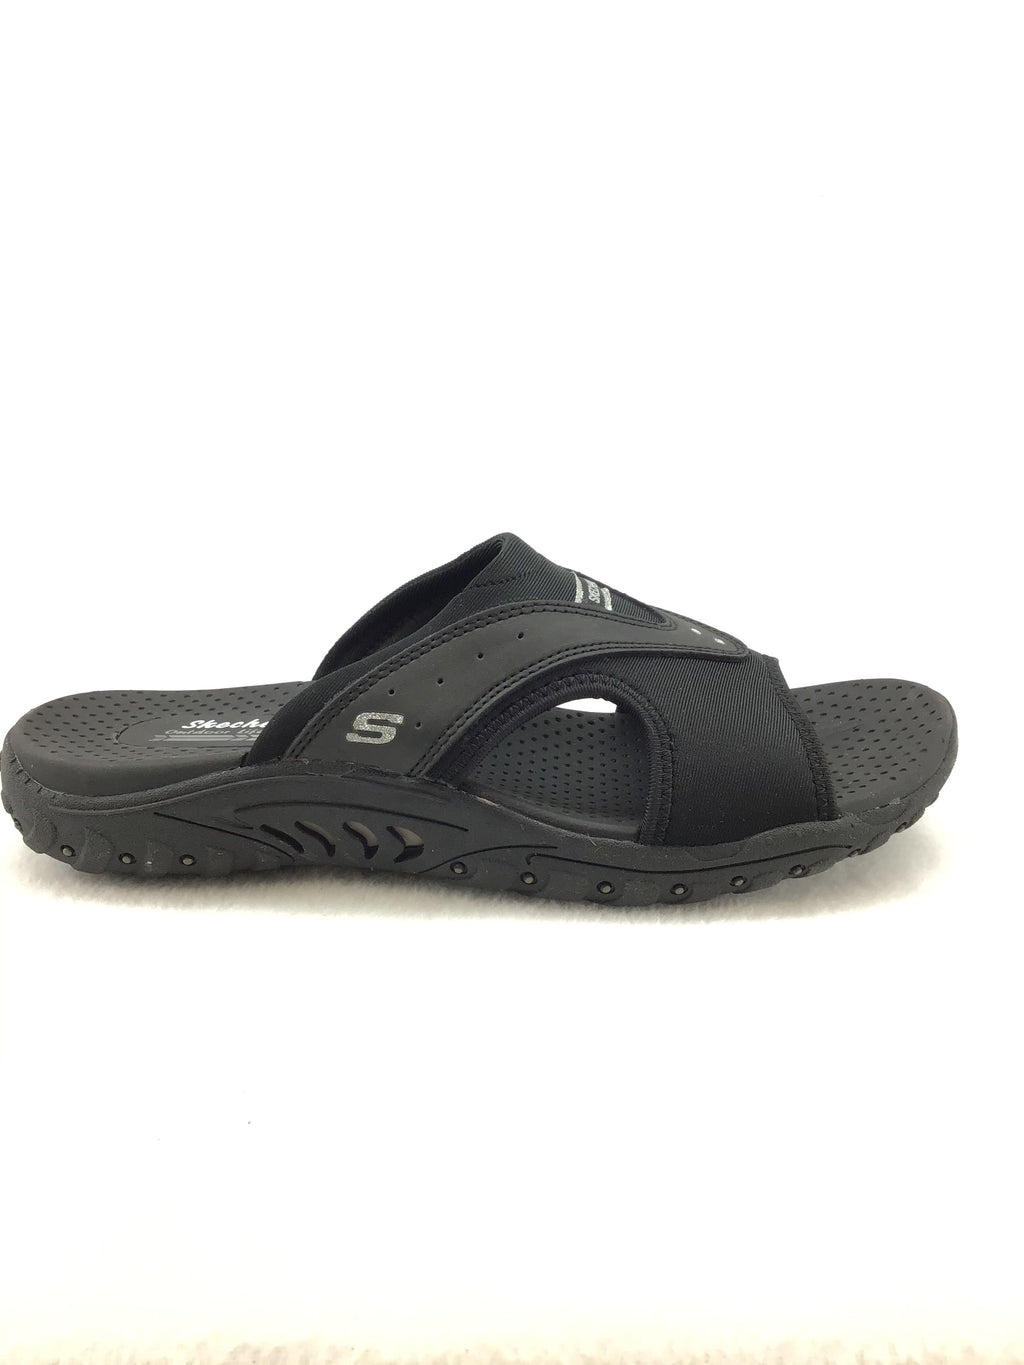 Skechers Reggaes Outdoor Lifestyle Sandals Size 9